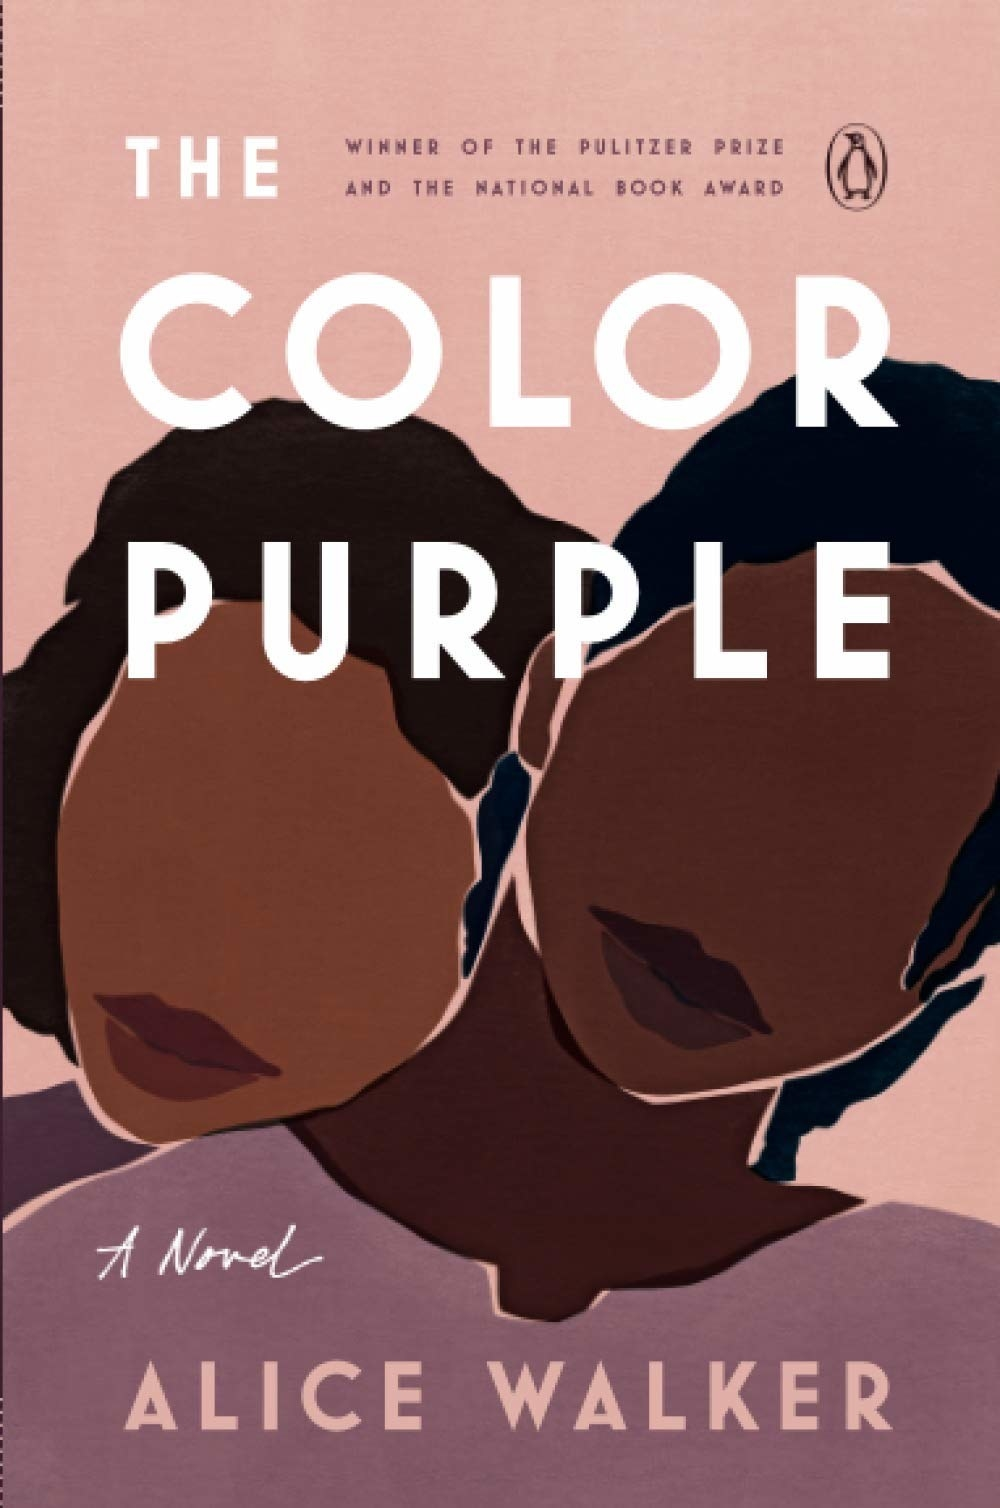 the cover of alice walker's the color purple